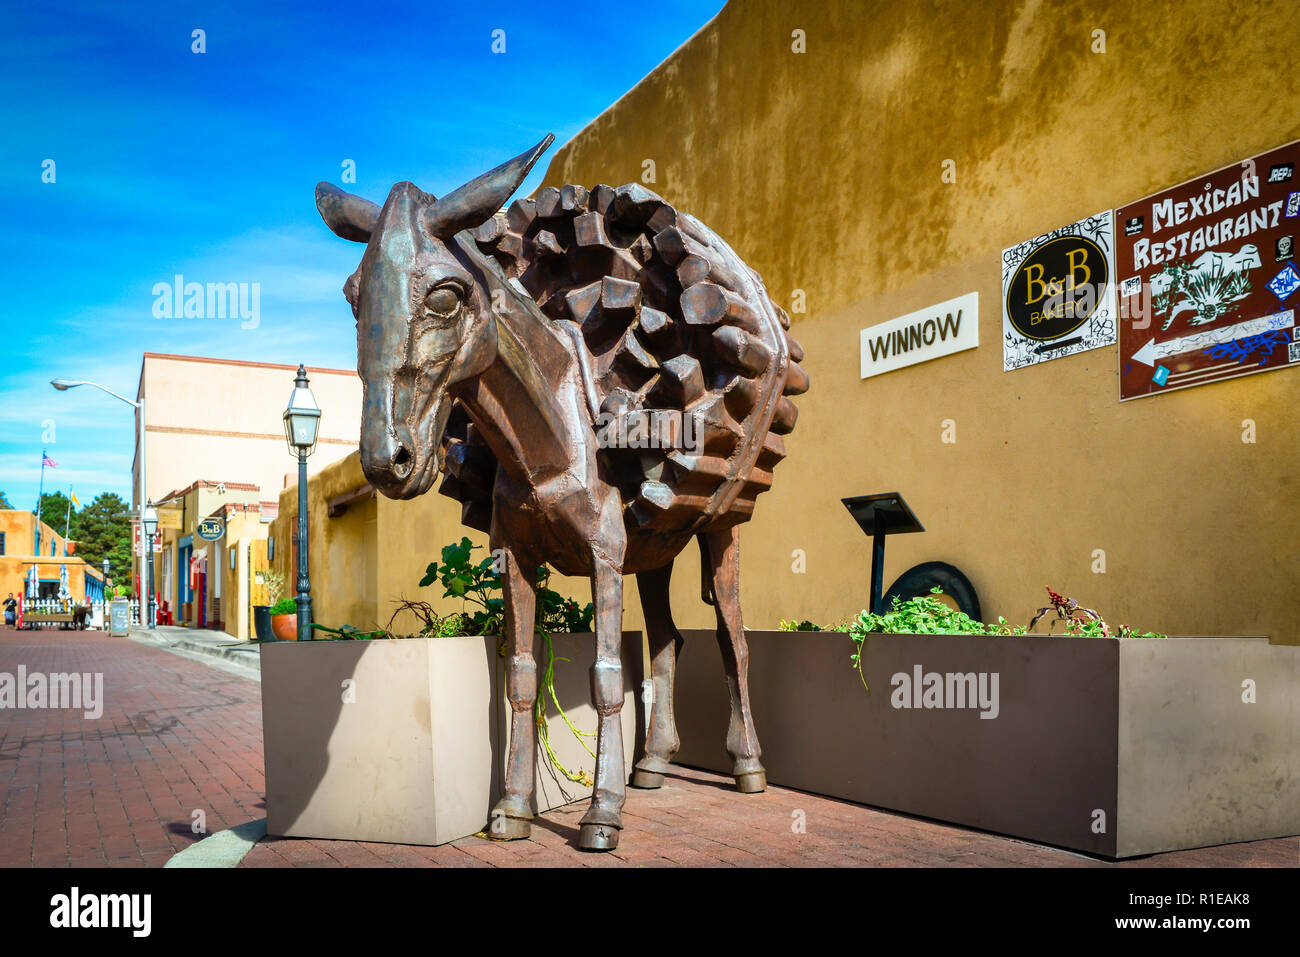 The bronze burro statue loaded down with firewood greets visitors at the entrance to Burro Alley with it's infamous history in downtown Santa Fe, NM - Stock Image